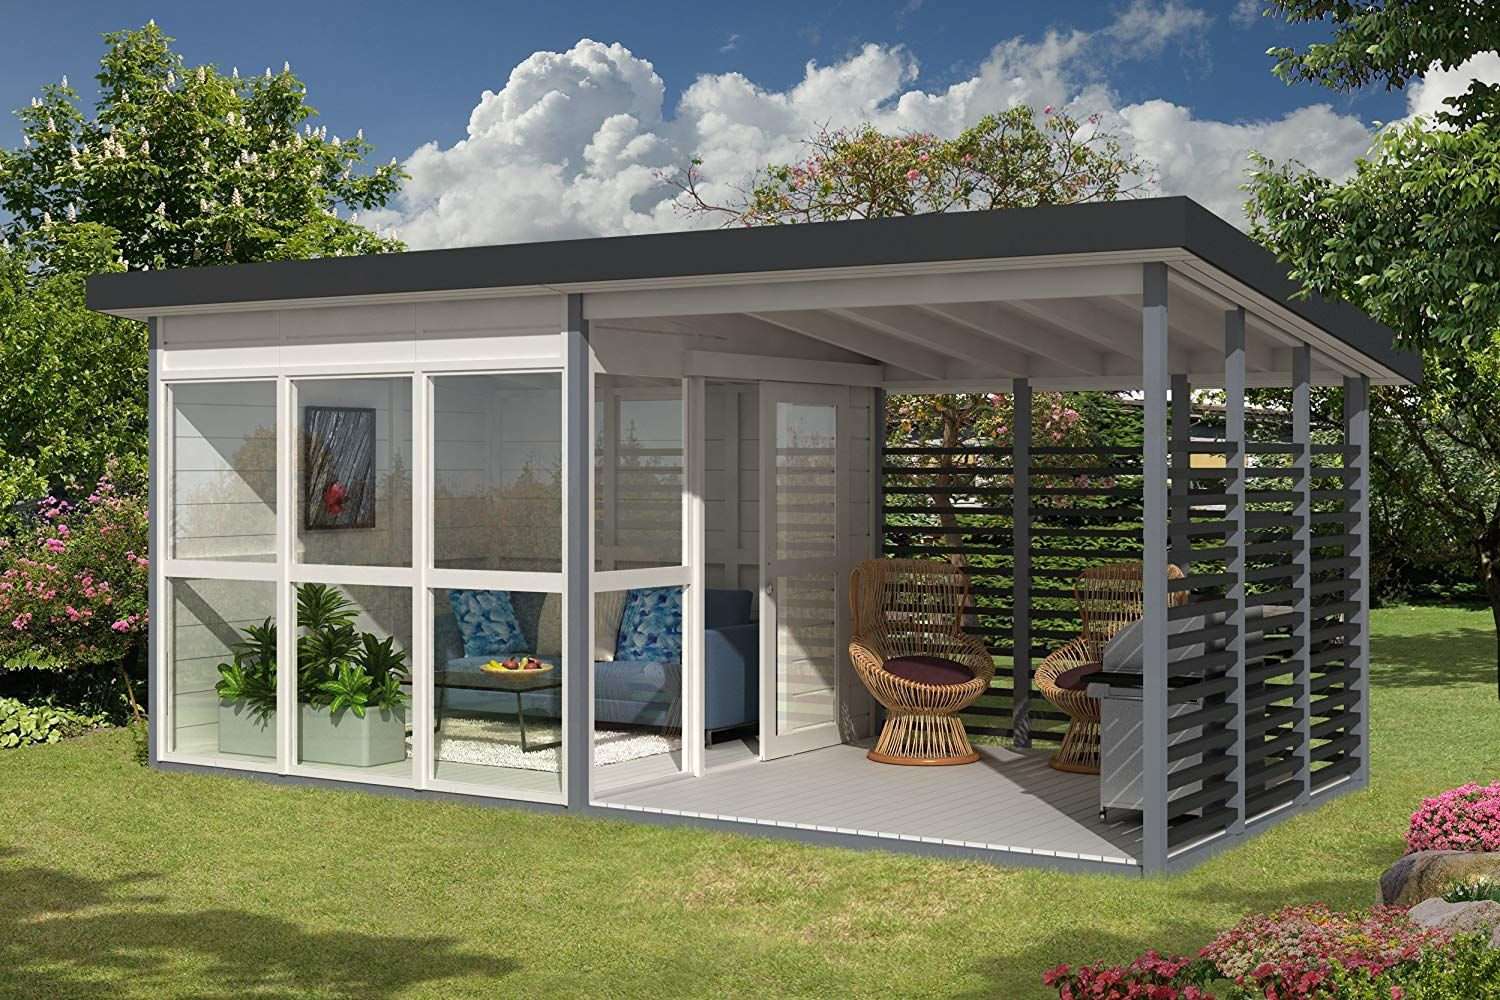 Amazon Is Selling a DIY Backyard Guest House That Can Be Built in 8 Hours